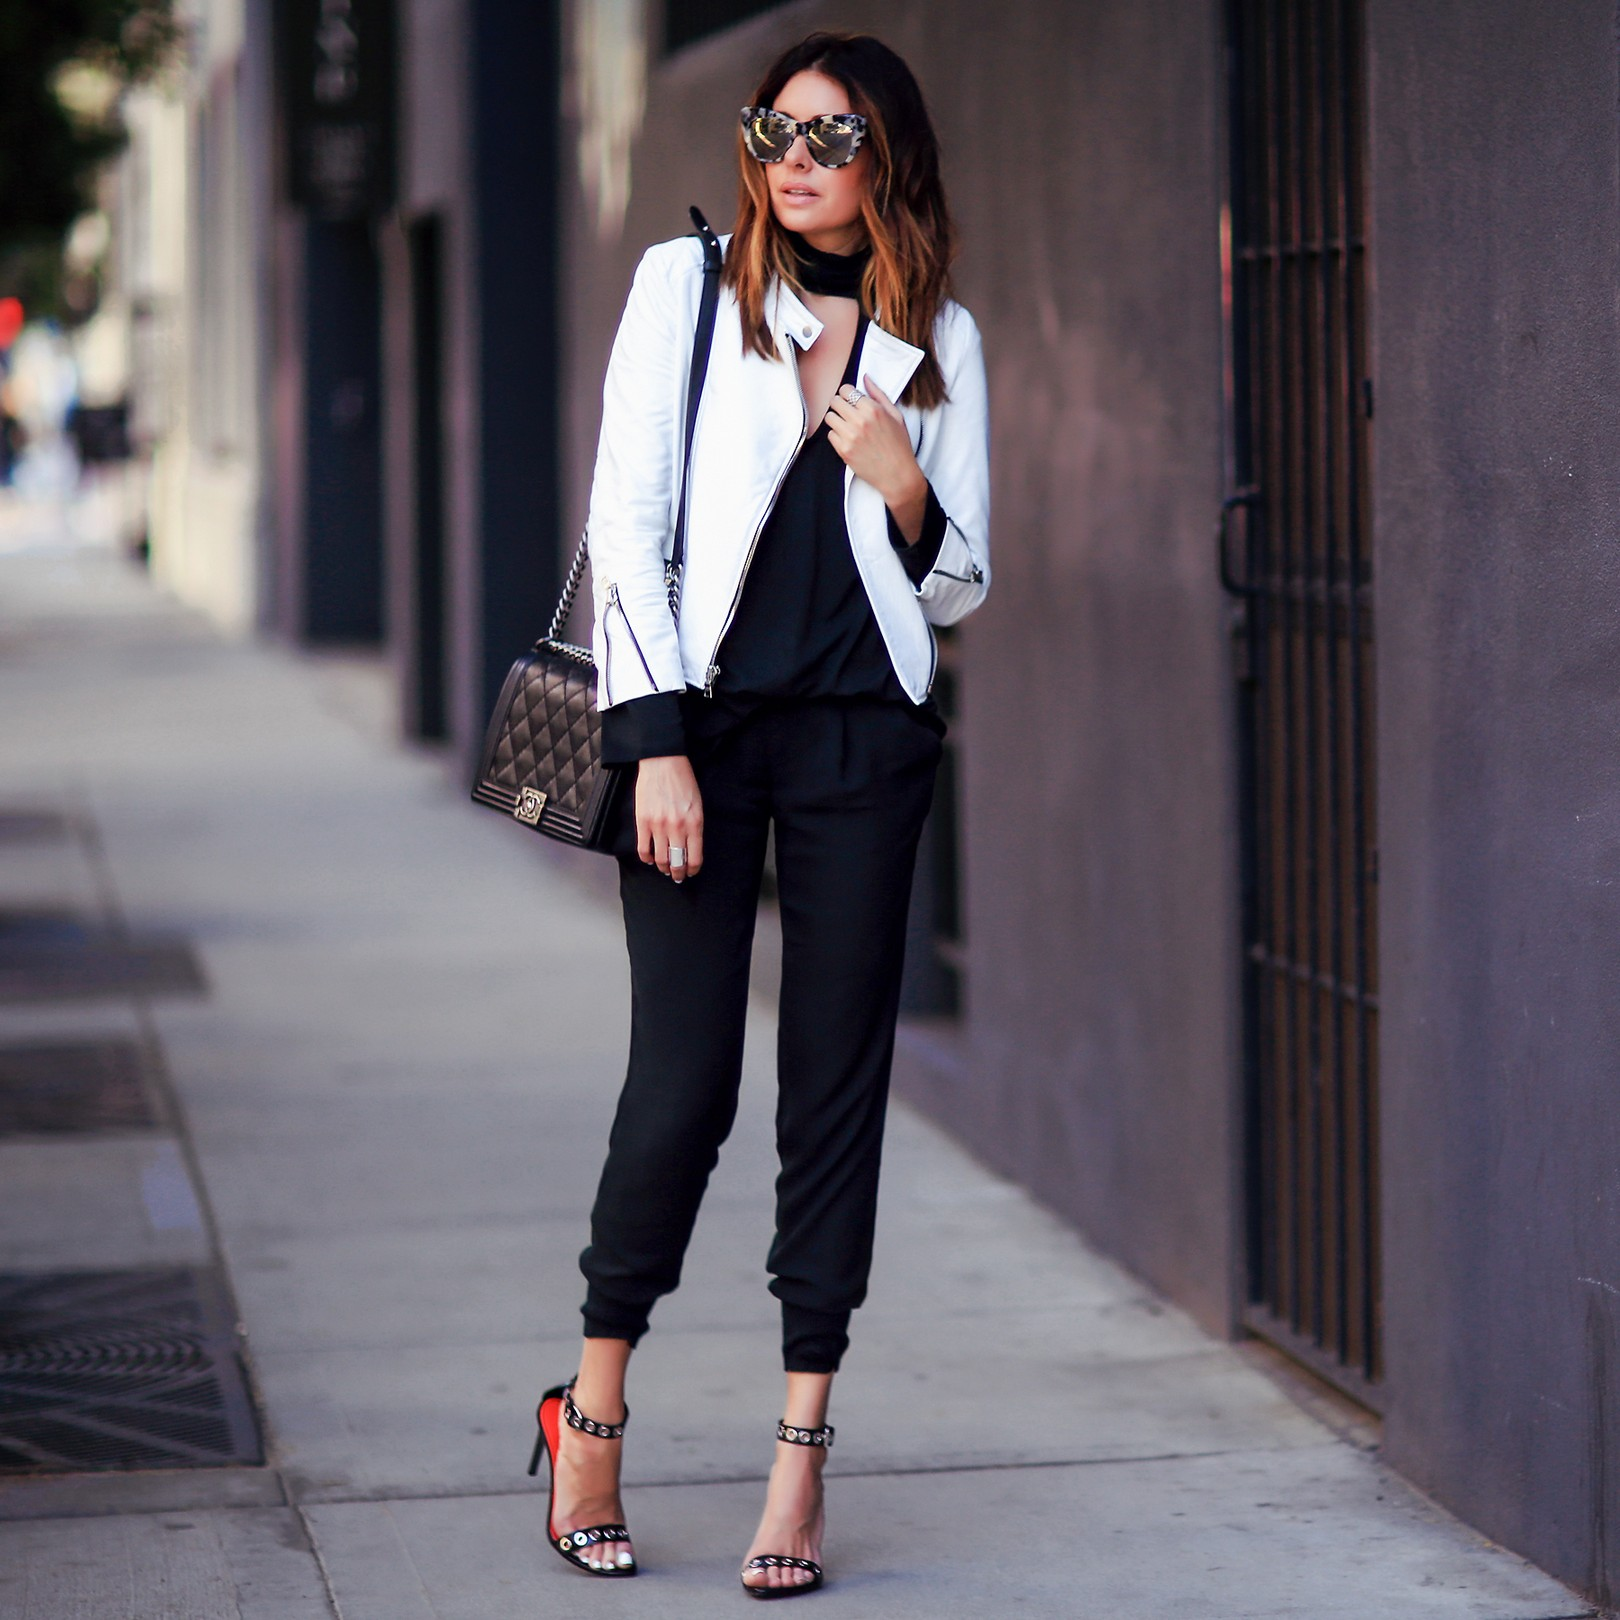 Monochrome outfit1